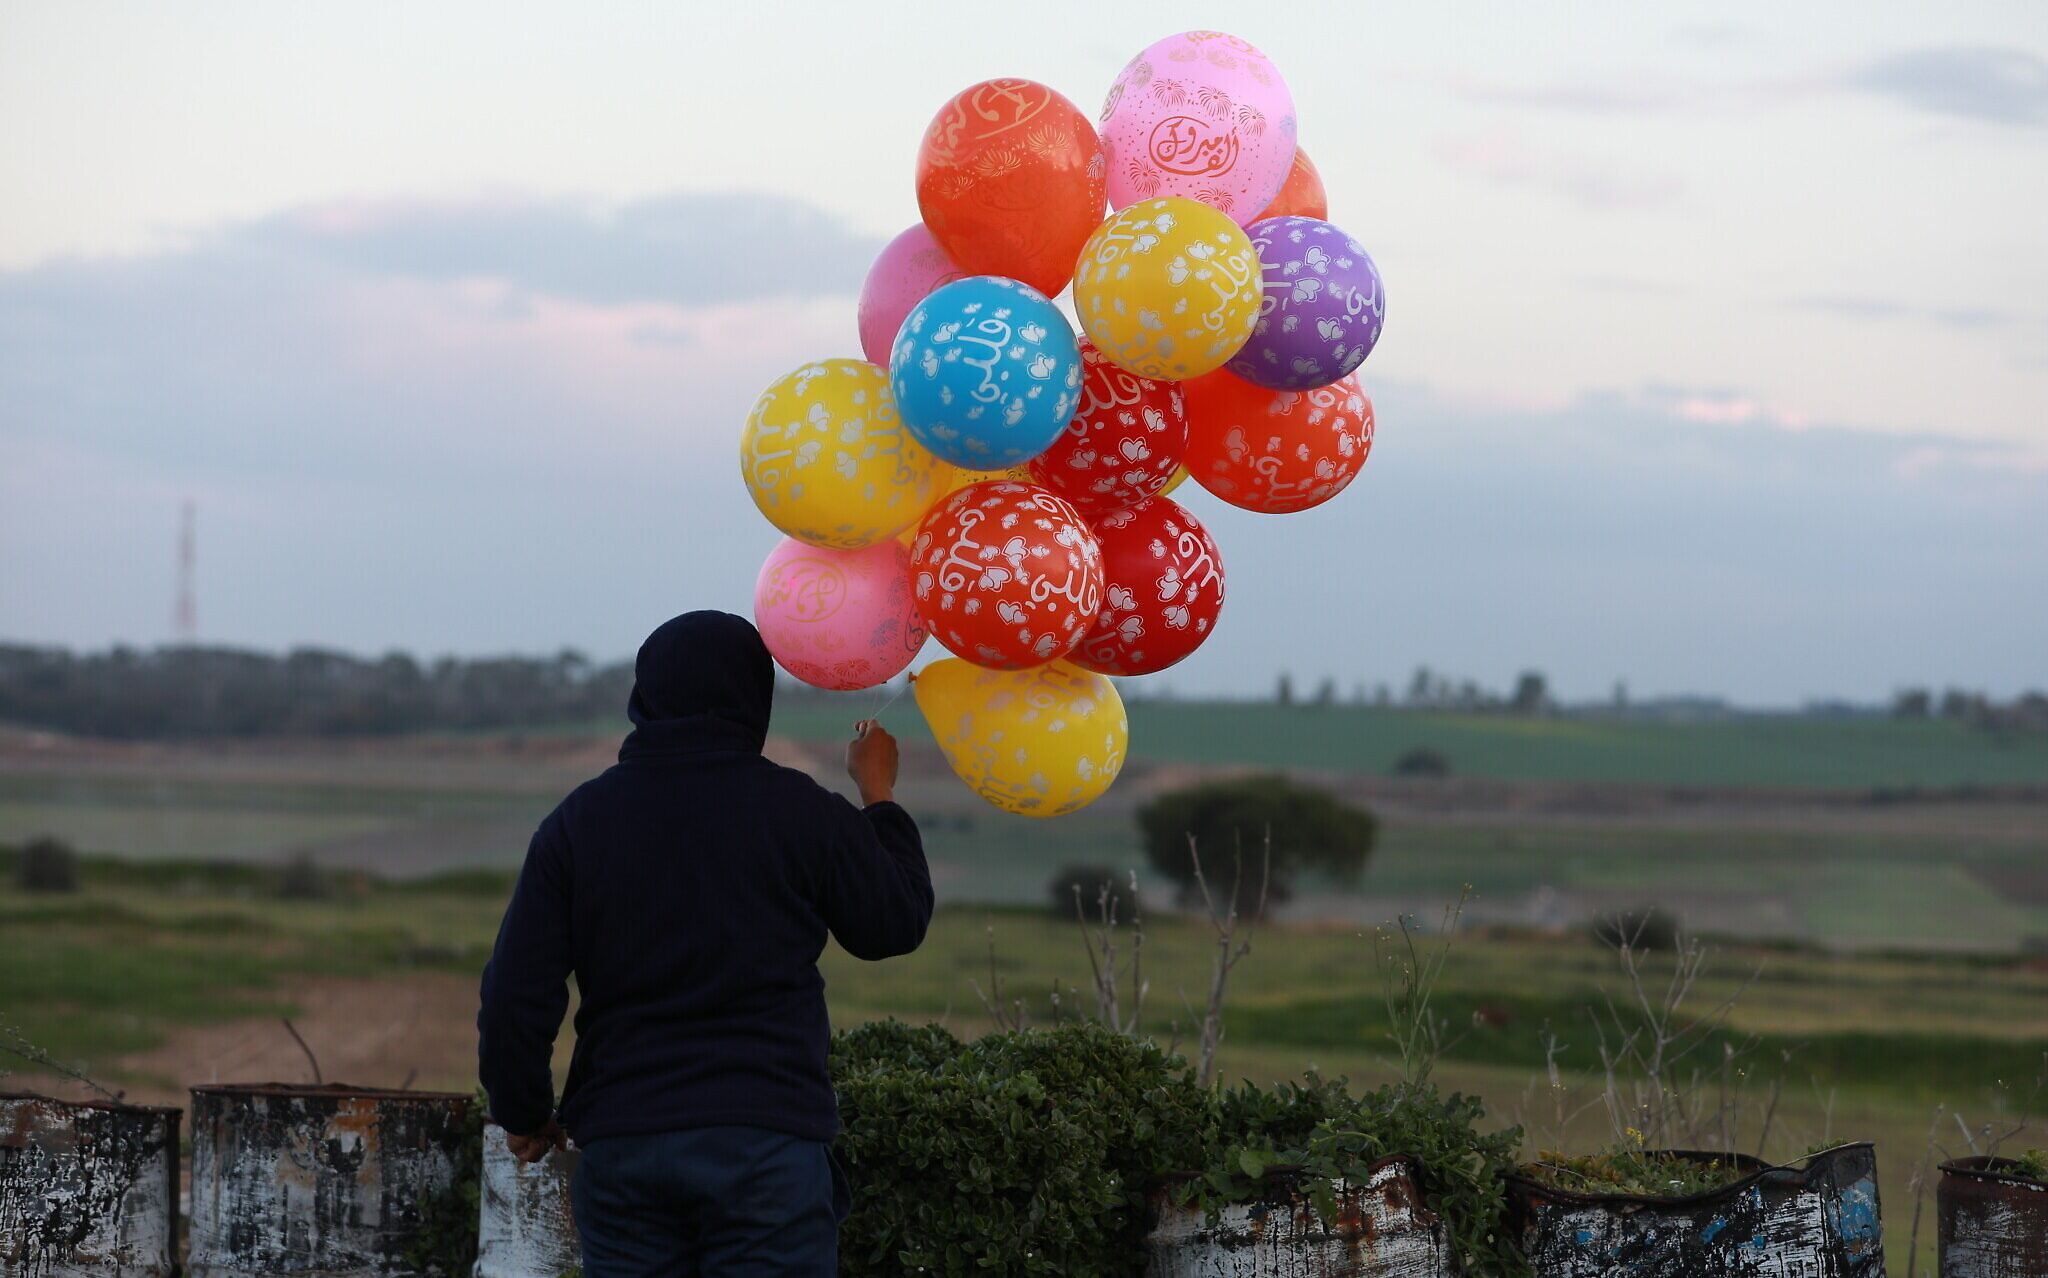 Israel strikes in Gaza in response to incendiary balloons